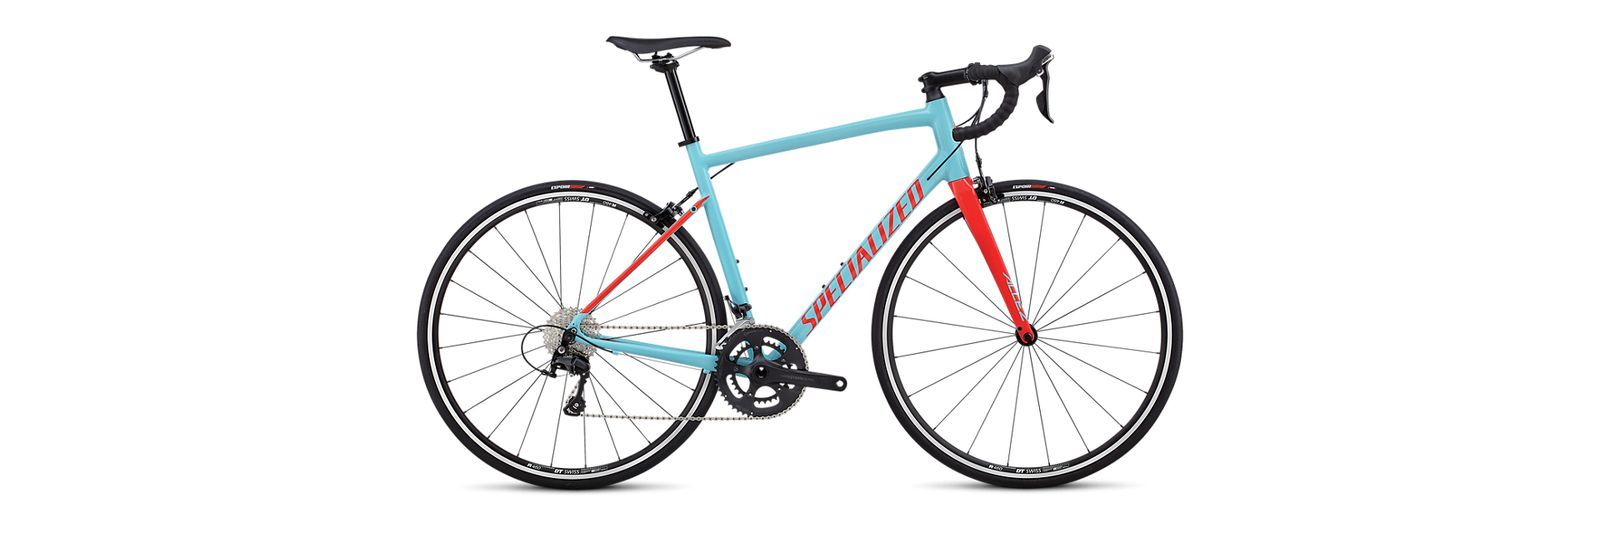 The Best Specialized Bikes You Can Buy Right Now